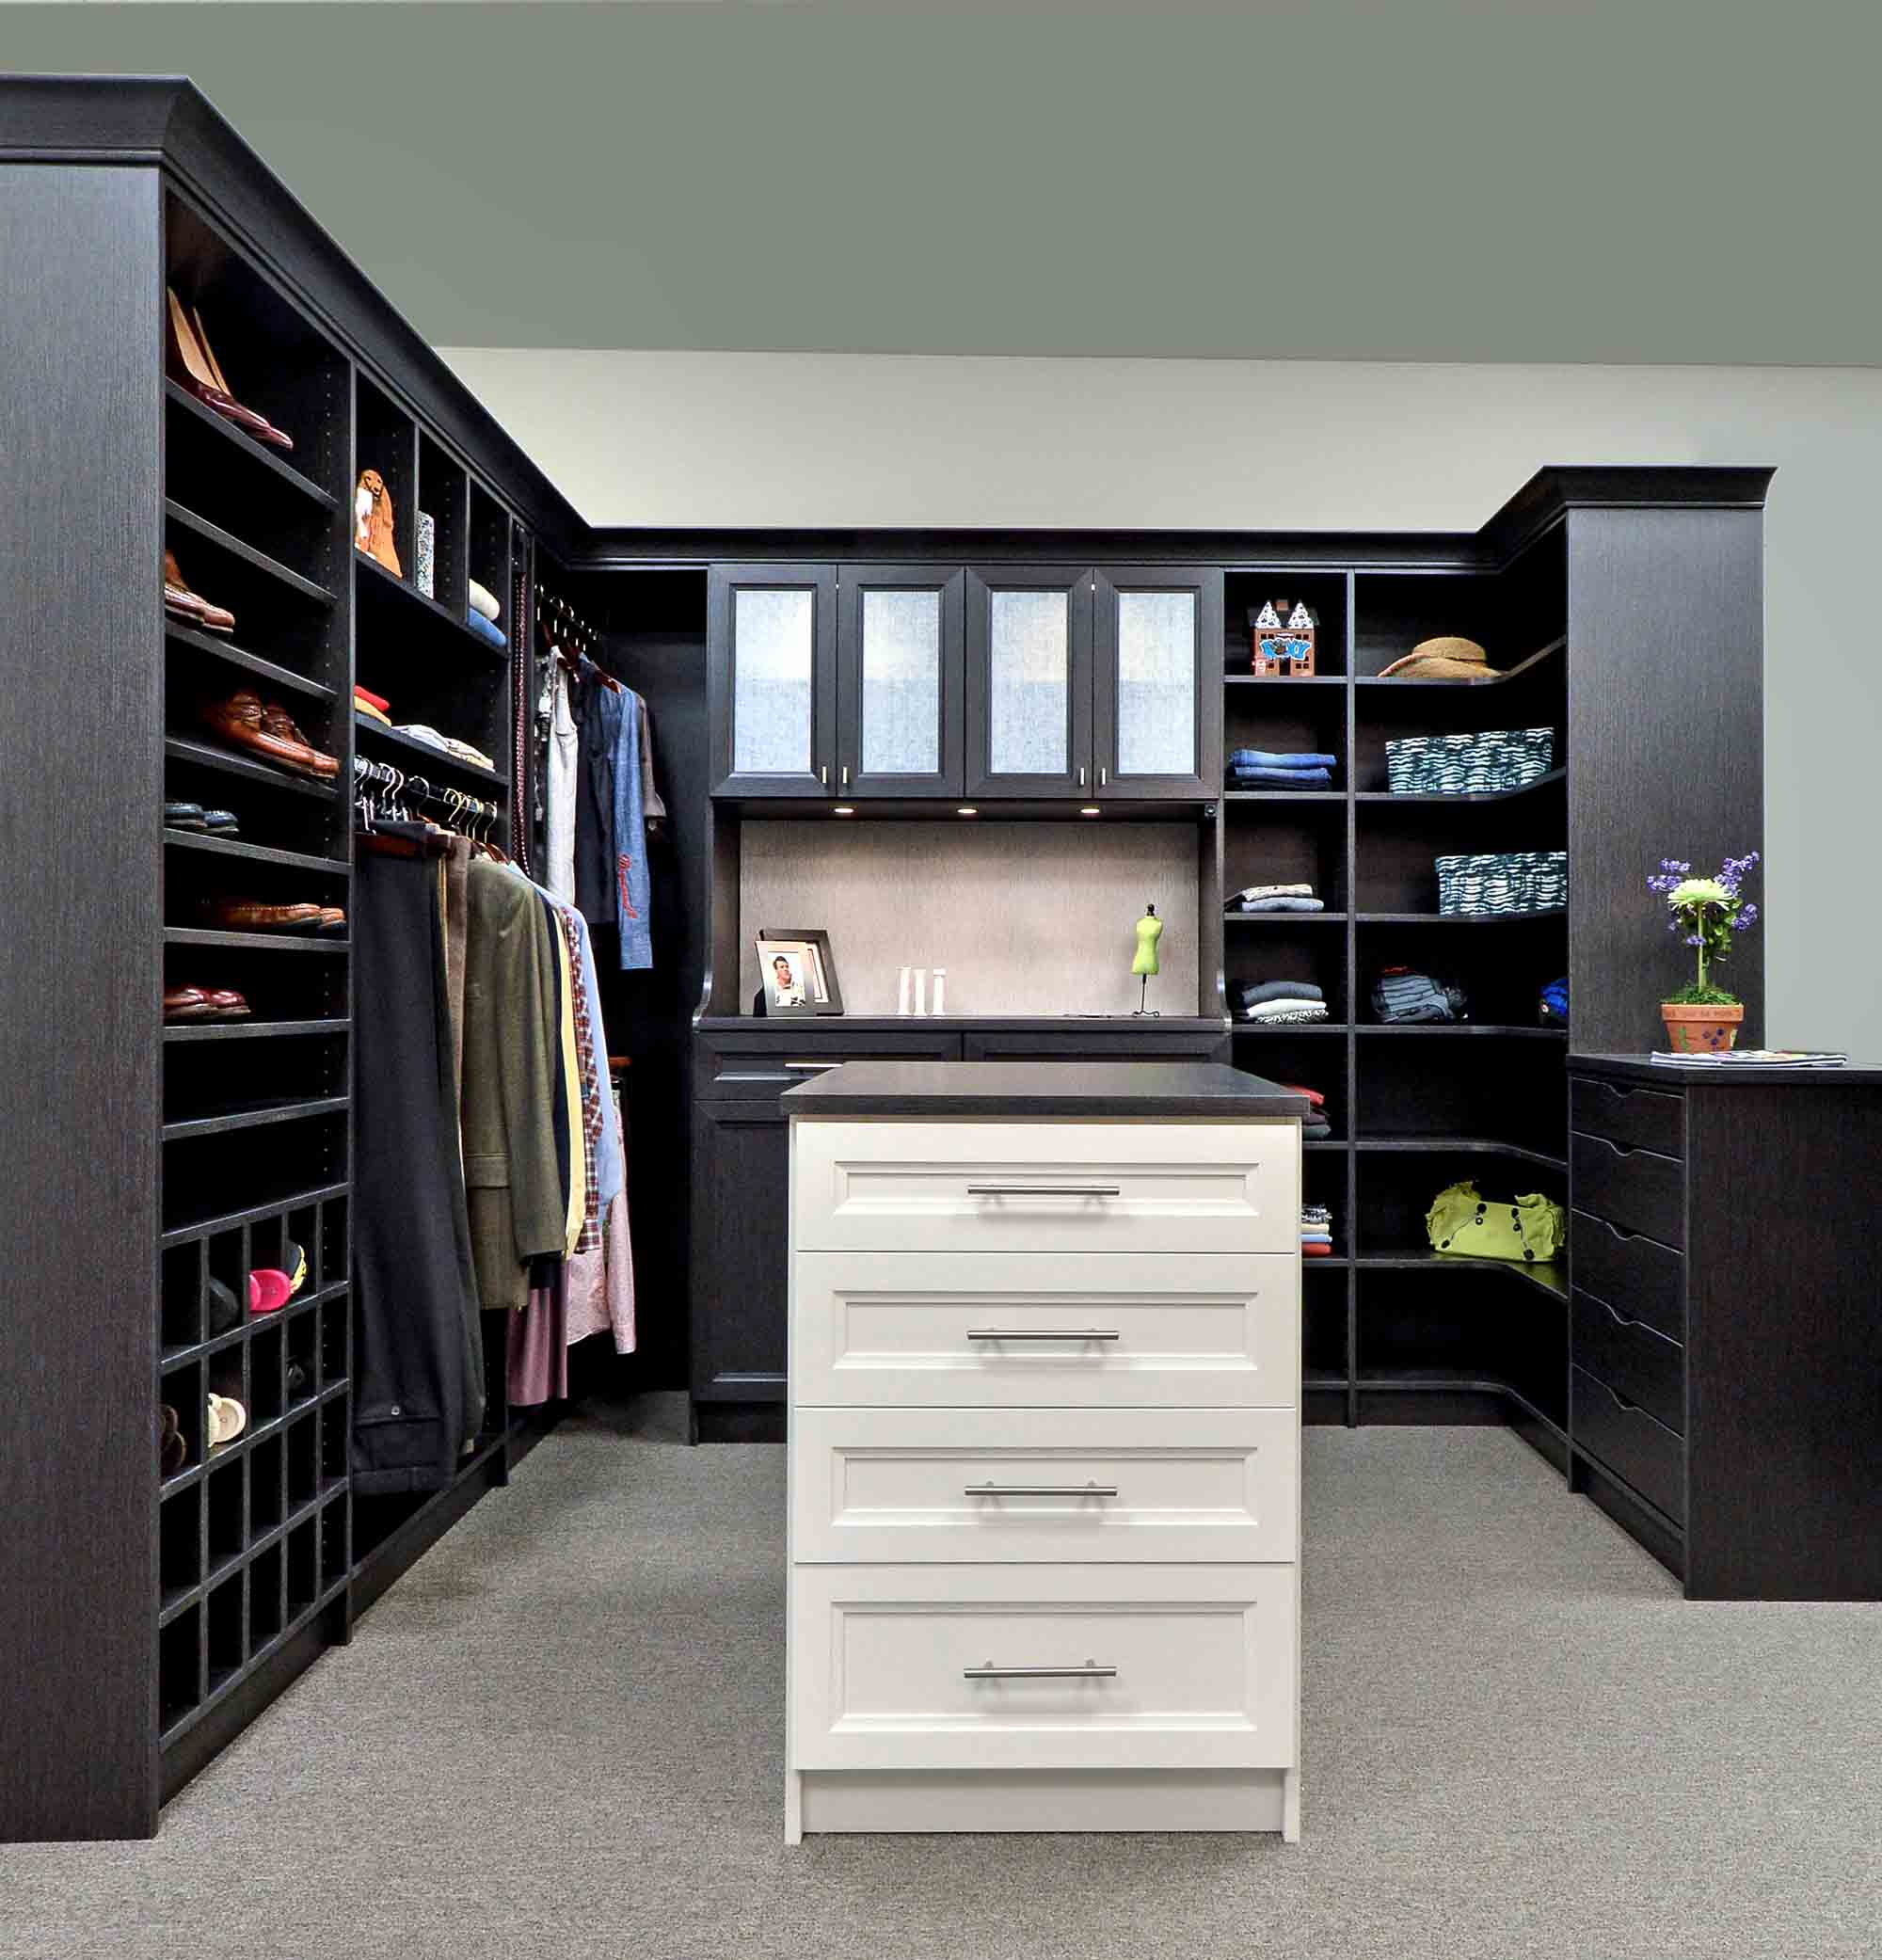 Walk in closet design idea with center island and shoe shelves